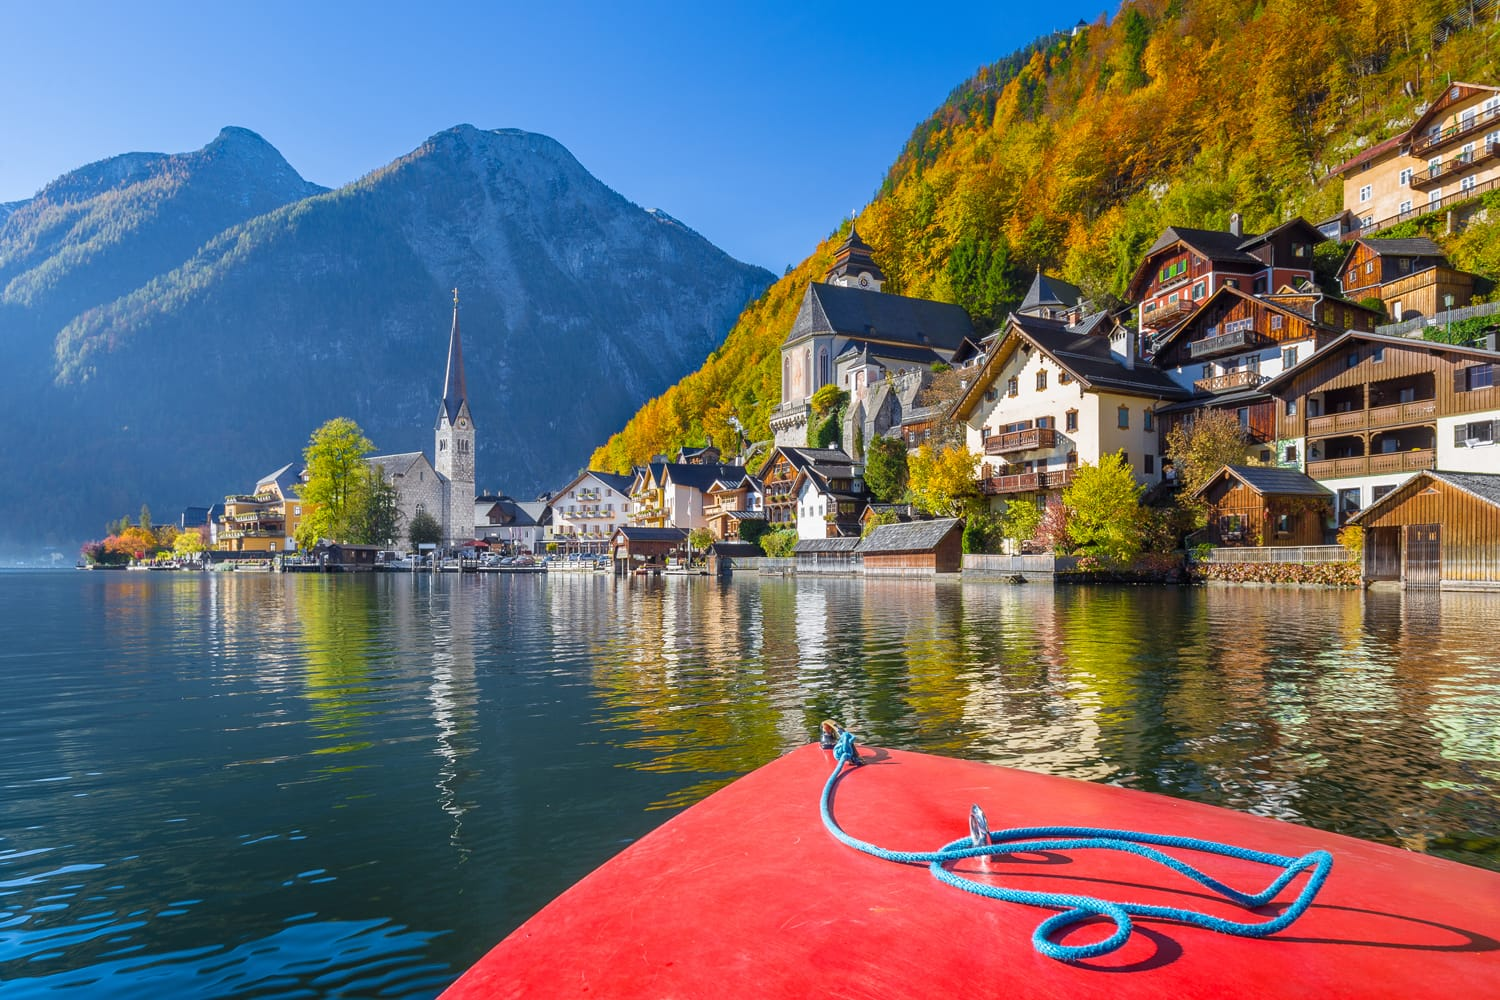 Scenic picture-postcard view of famous Hallstatt mountain village during a boat tour on Hallstatter See in the Austrian Alps in beautiful golden morning light in fall, region of Salzkammergut, Austria